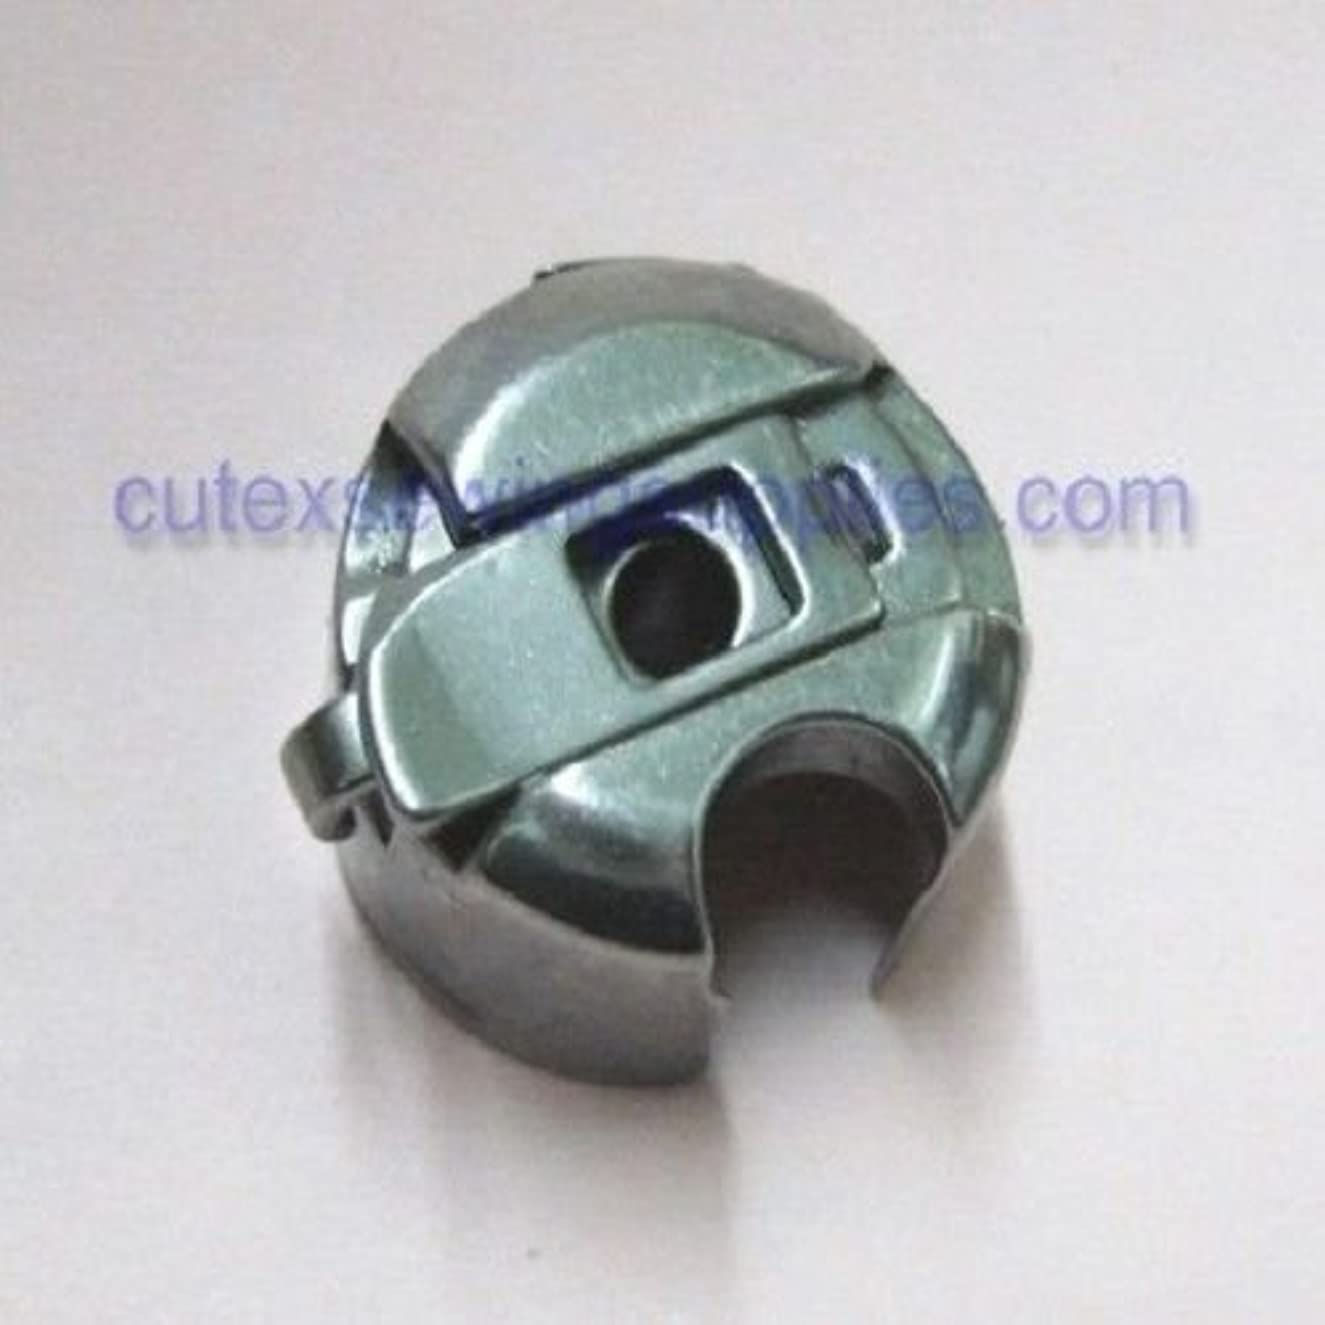 Cutex Sewing Bobbin Case For SINGER 95, 96, 195K, 196K, Class Sewing Machines